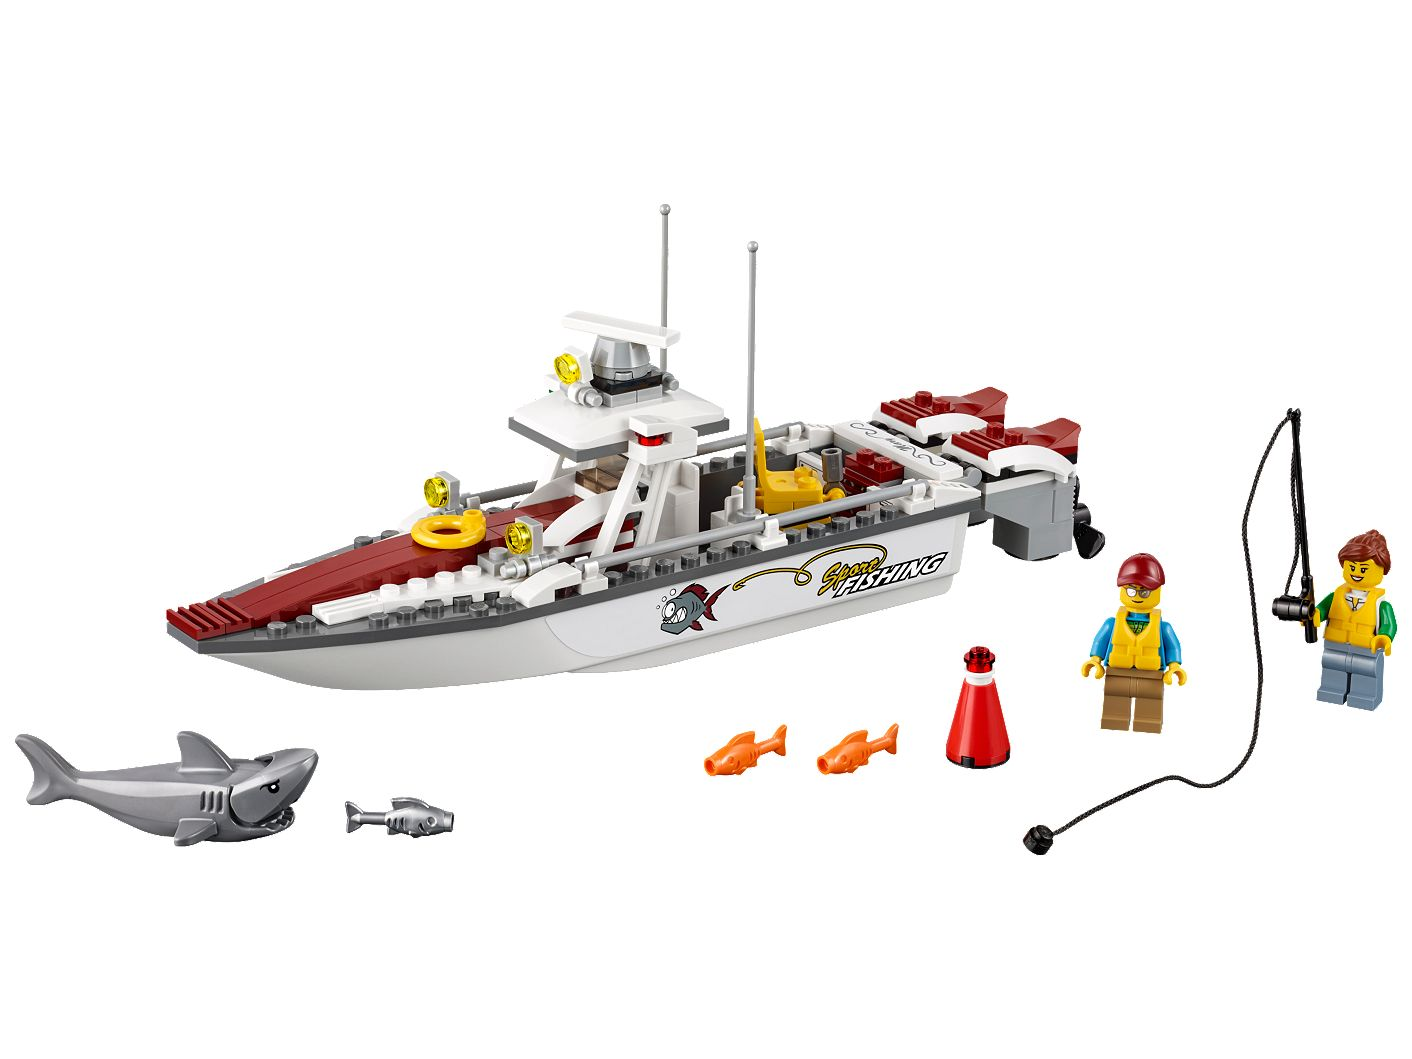 Fishing Boat 60147 | City | Buy online at the Official LEGO® Shop US